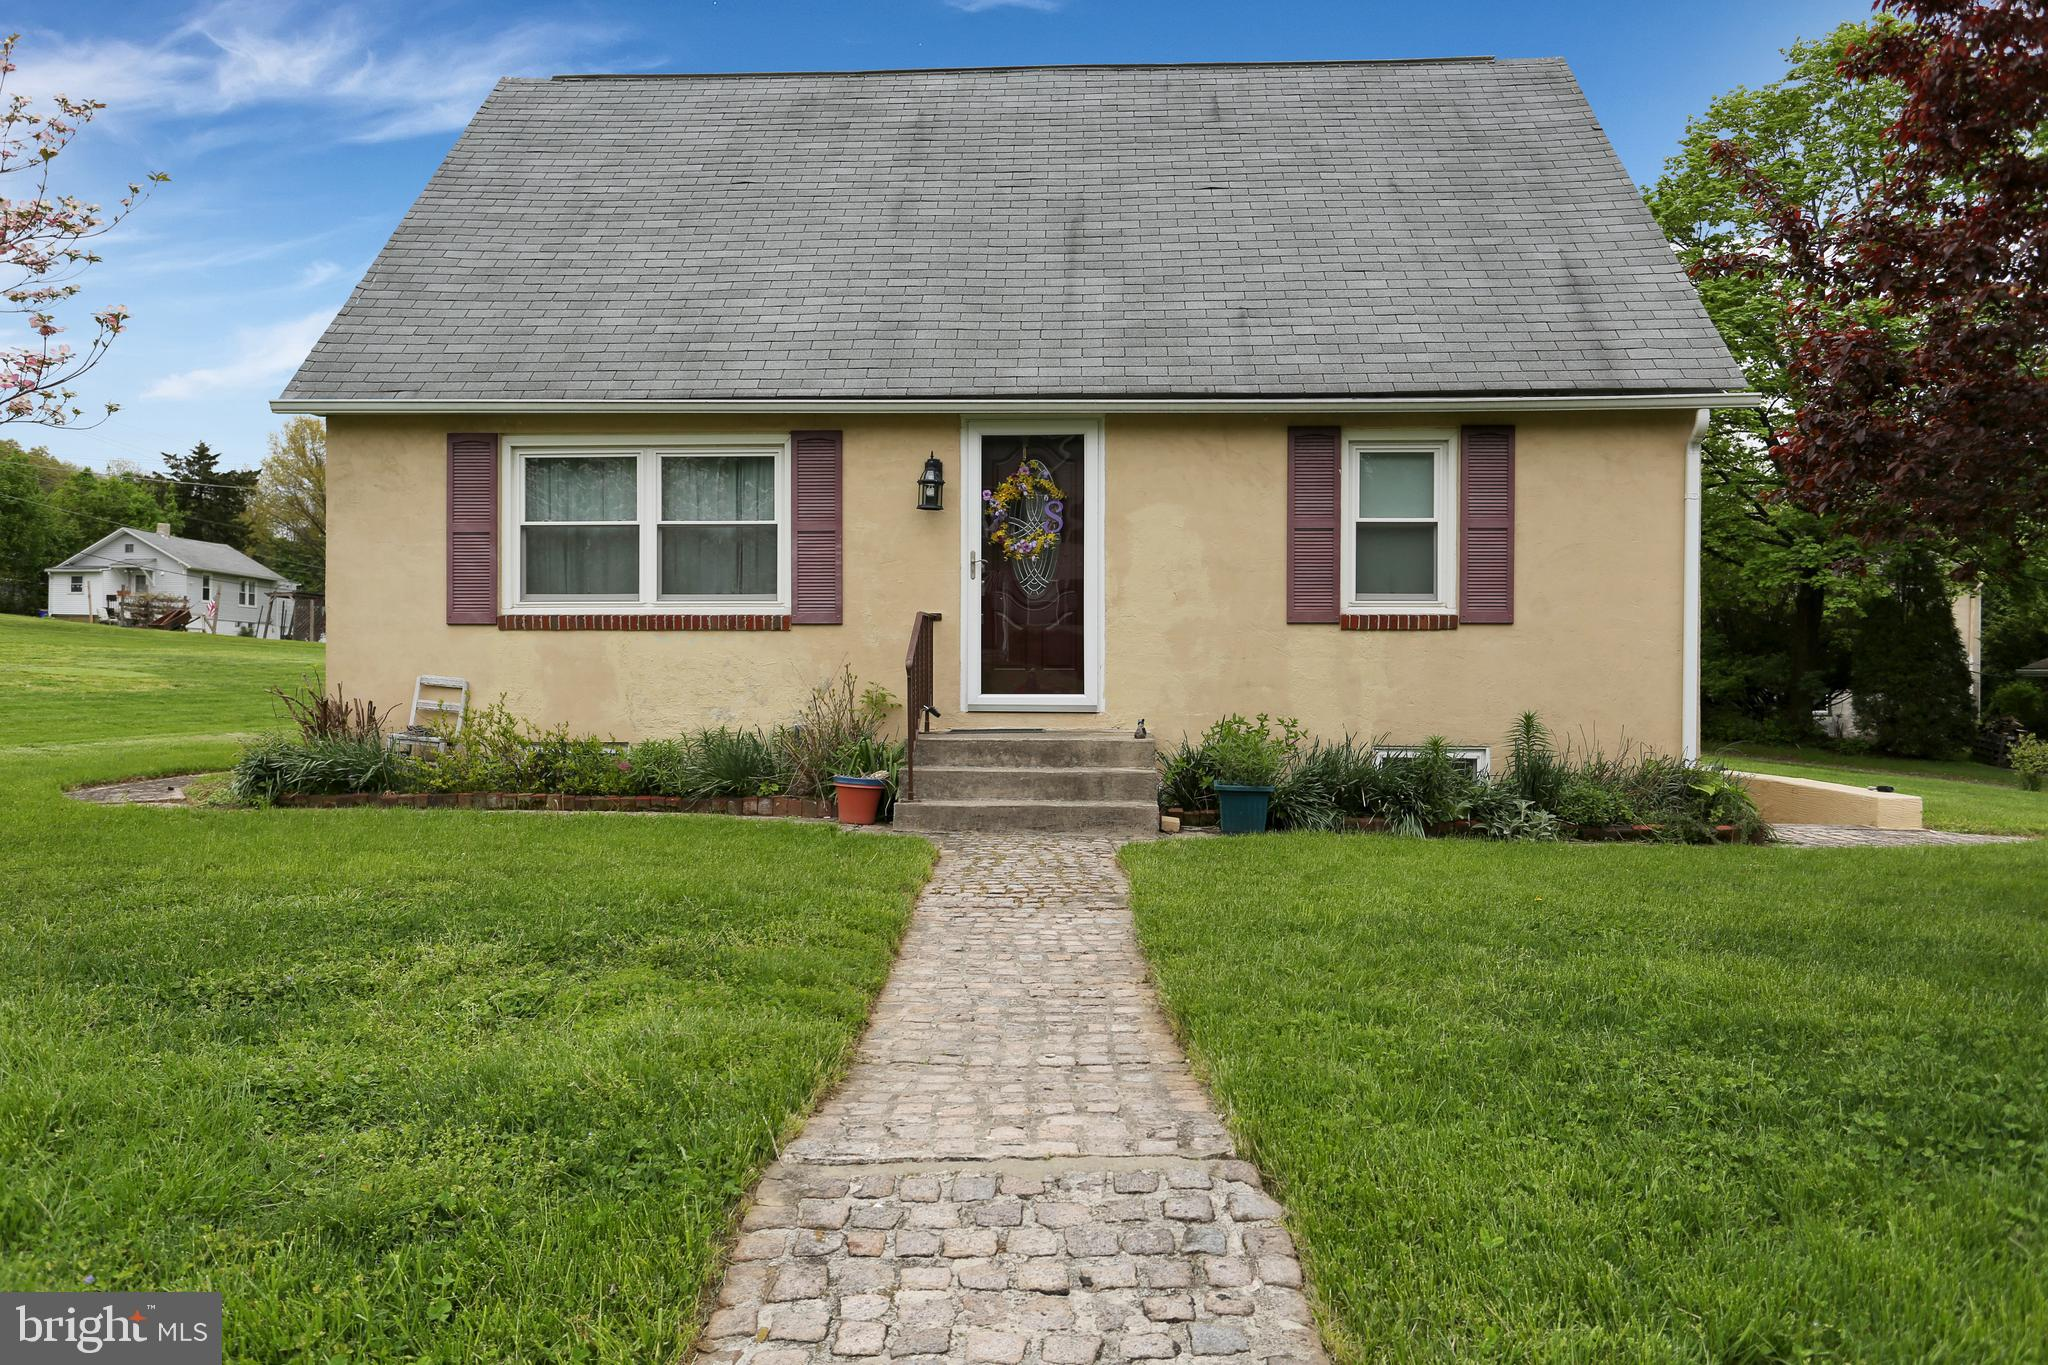 Beautiful traditional Cape Cod with two garages set on a large lot. The interior is well maintained. The bath was recently upgraded with a handicapped shower and space for a walker and/or wheel chair.